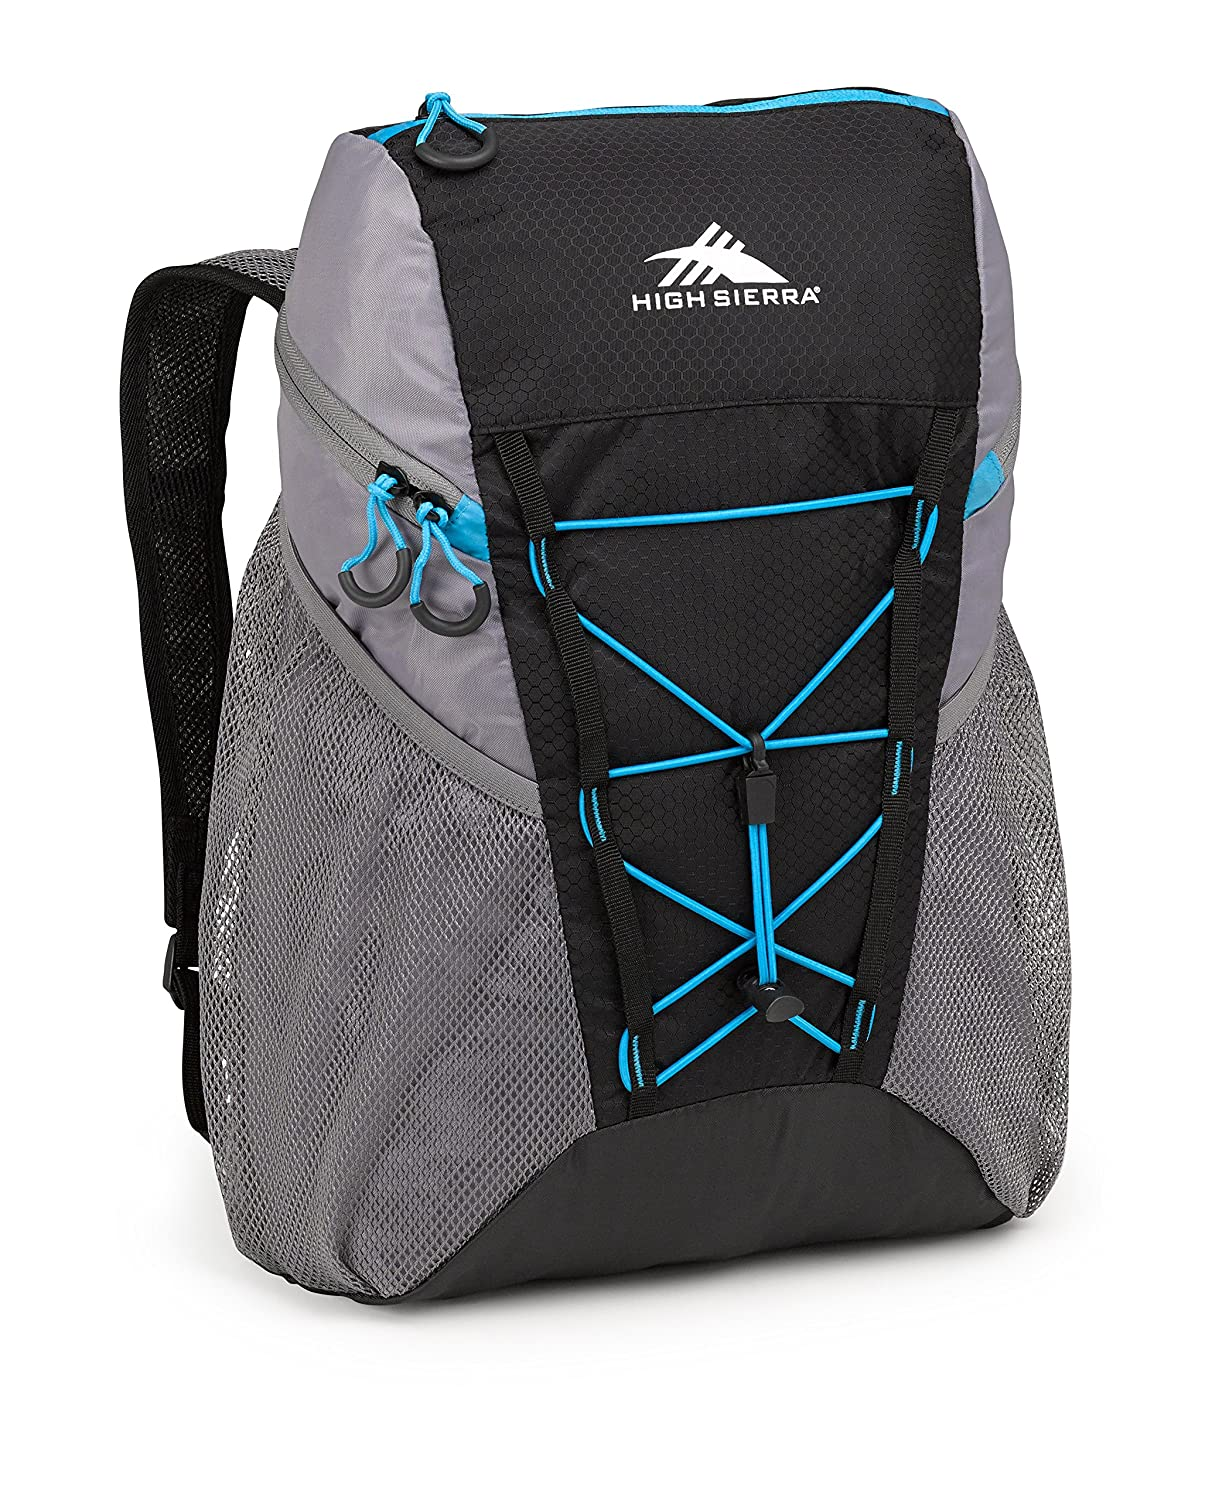 High Sierra 18L Packable Sport Backpack